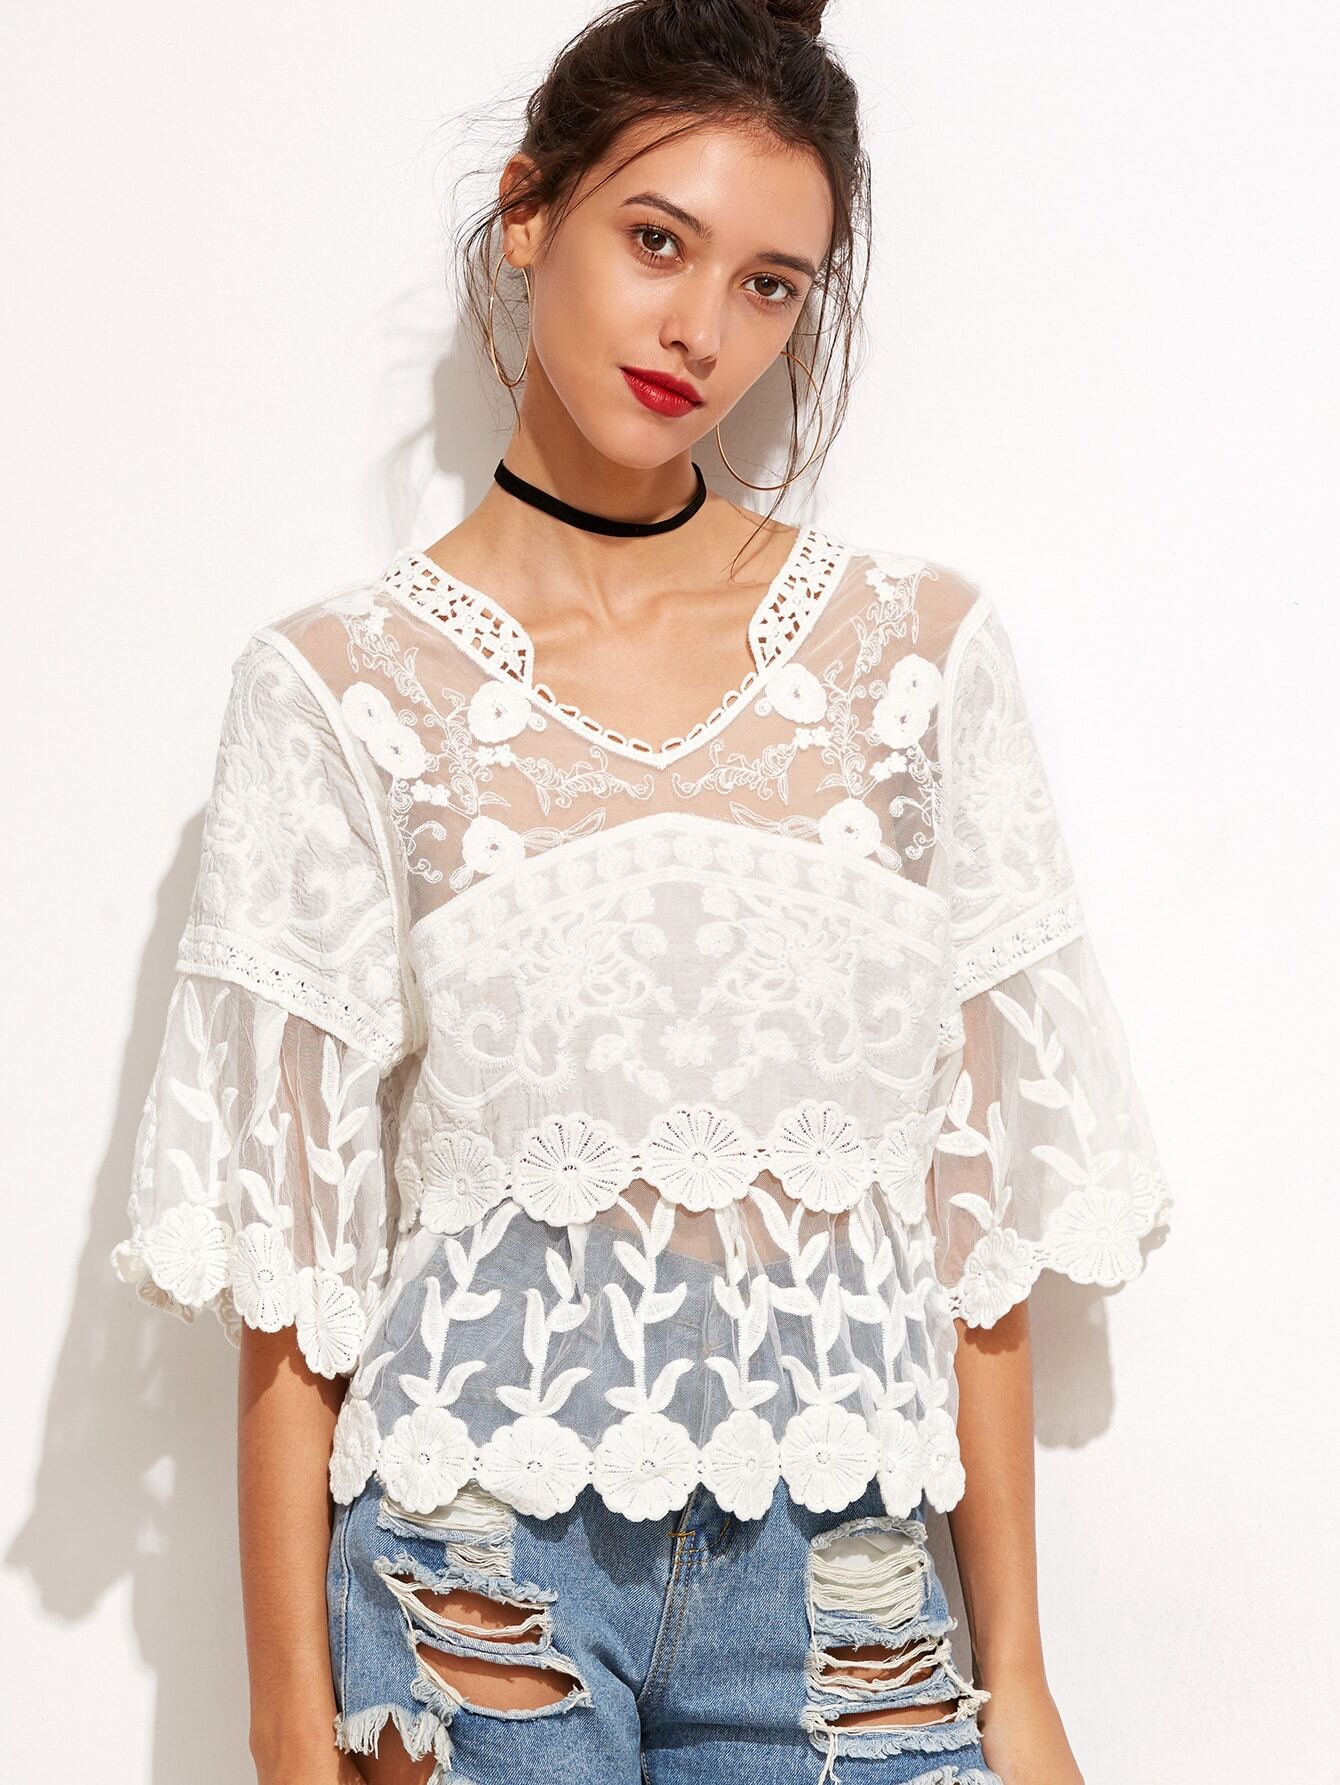 White Lace Embroidered Semi Sheer BlouseWhite Lace Embroidered Semi Sheer Blouse<br><br>color: White<br>size: one-size